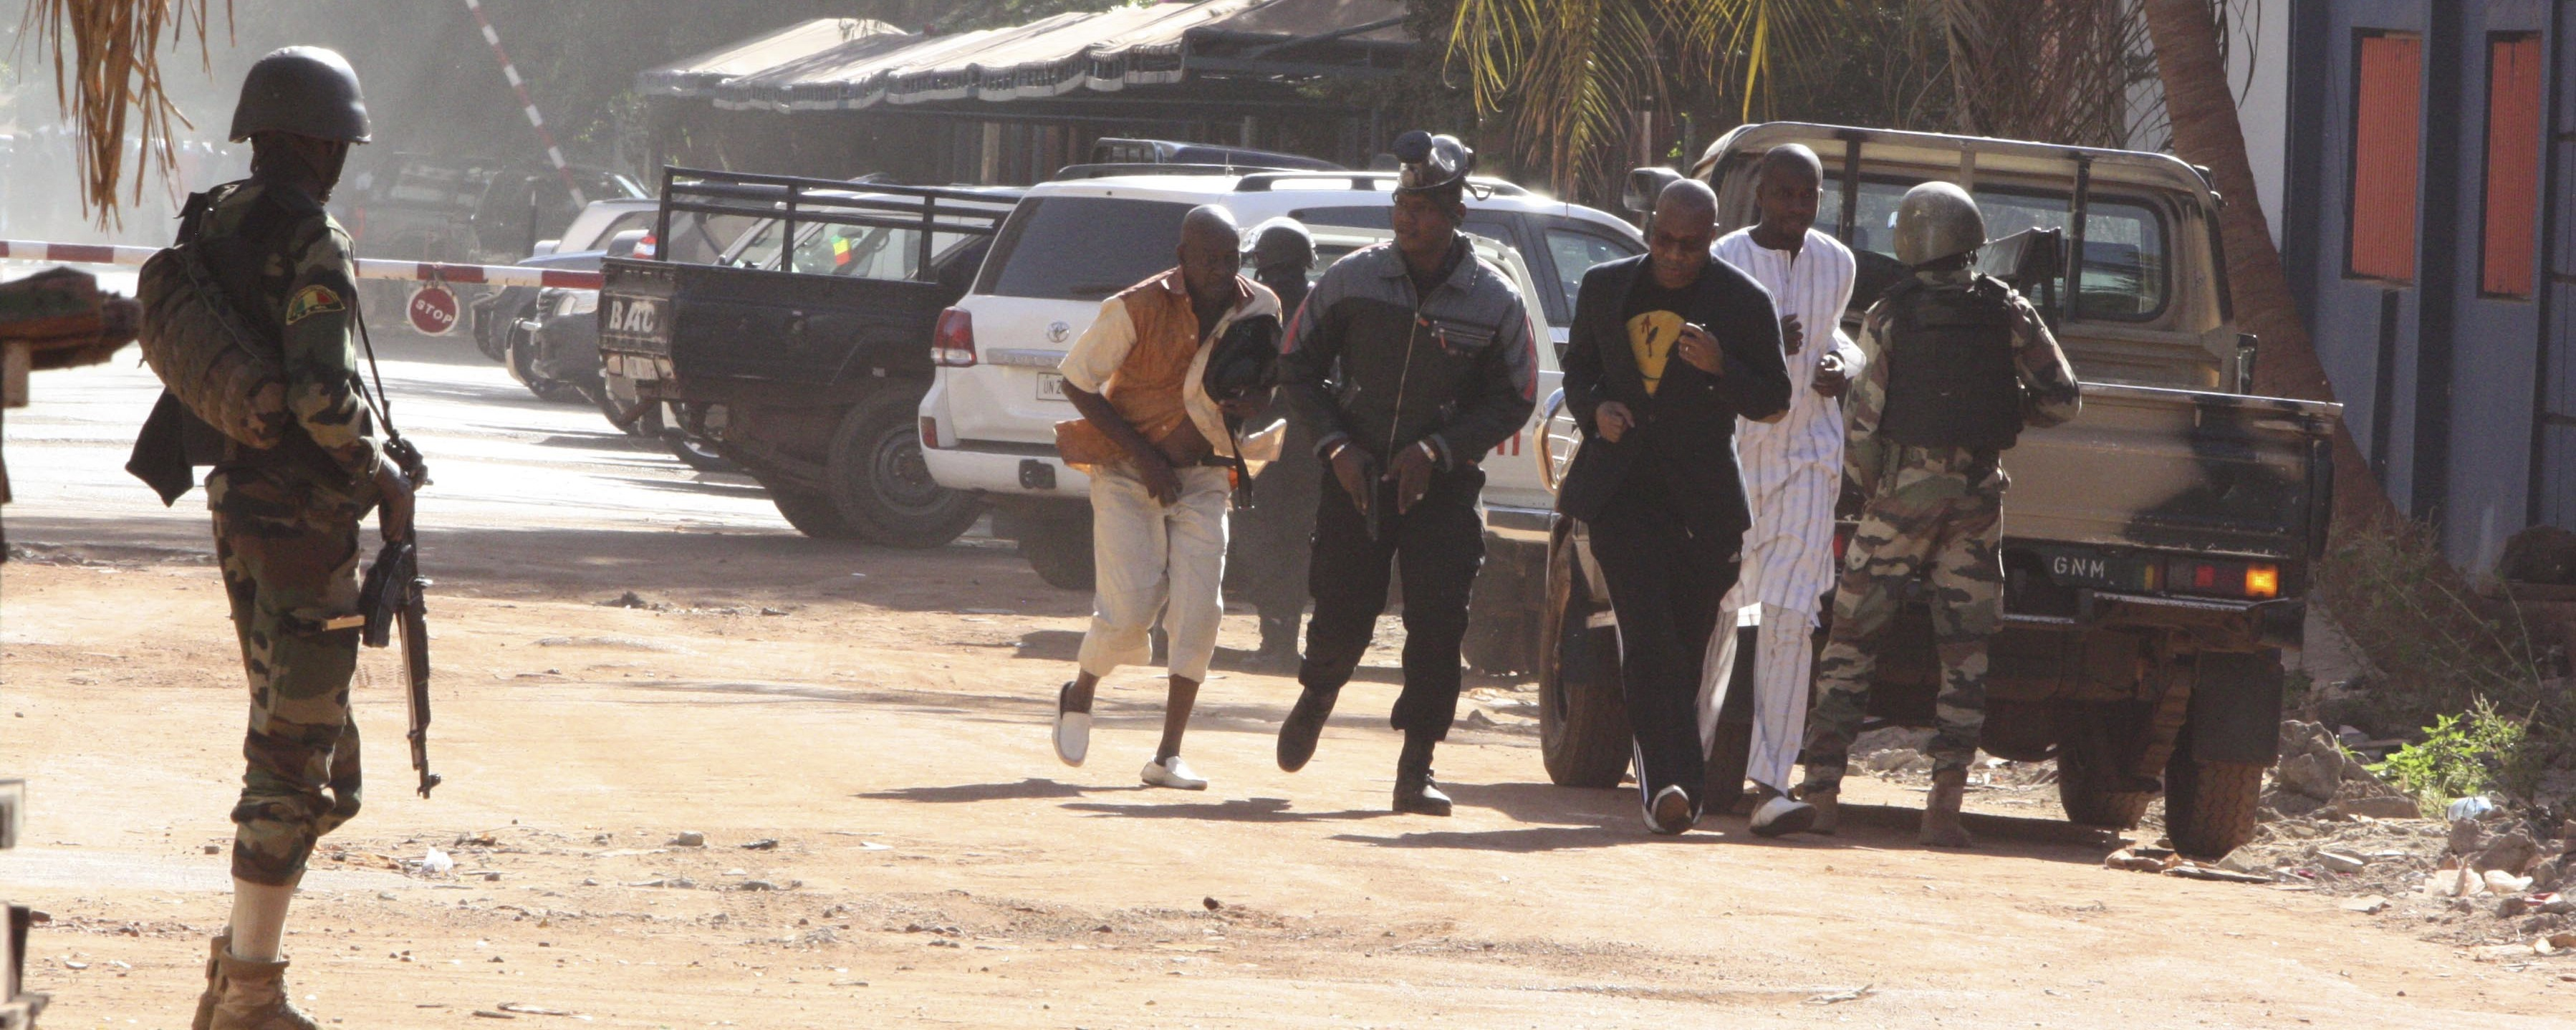 Remaining Hostages Freed in Mali Hotel Siege, But 27 Are Dead